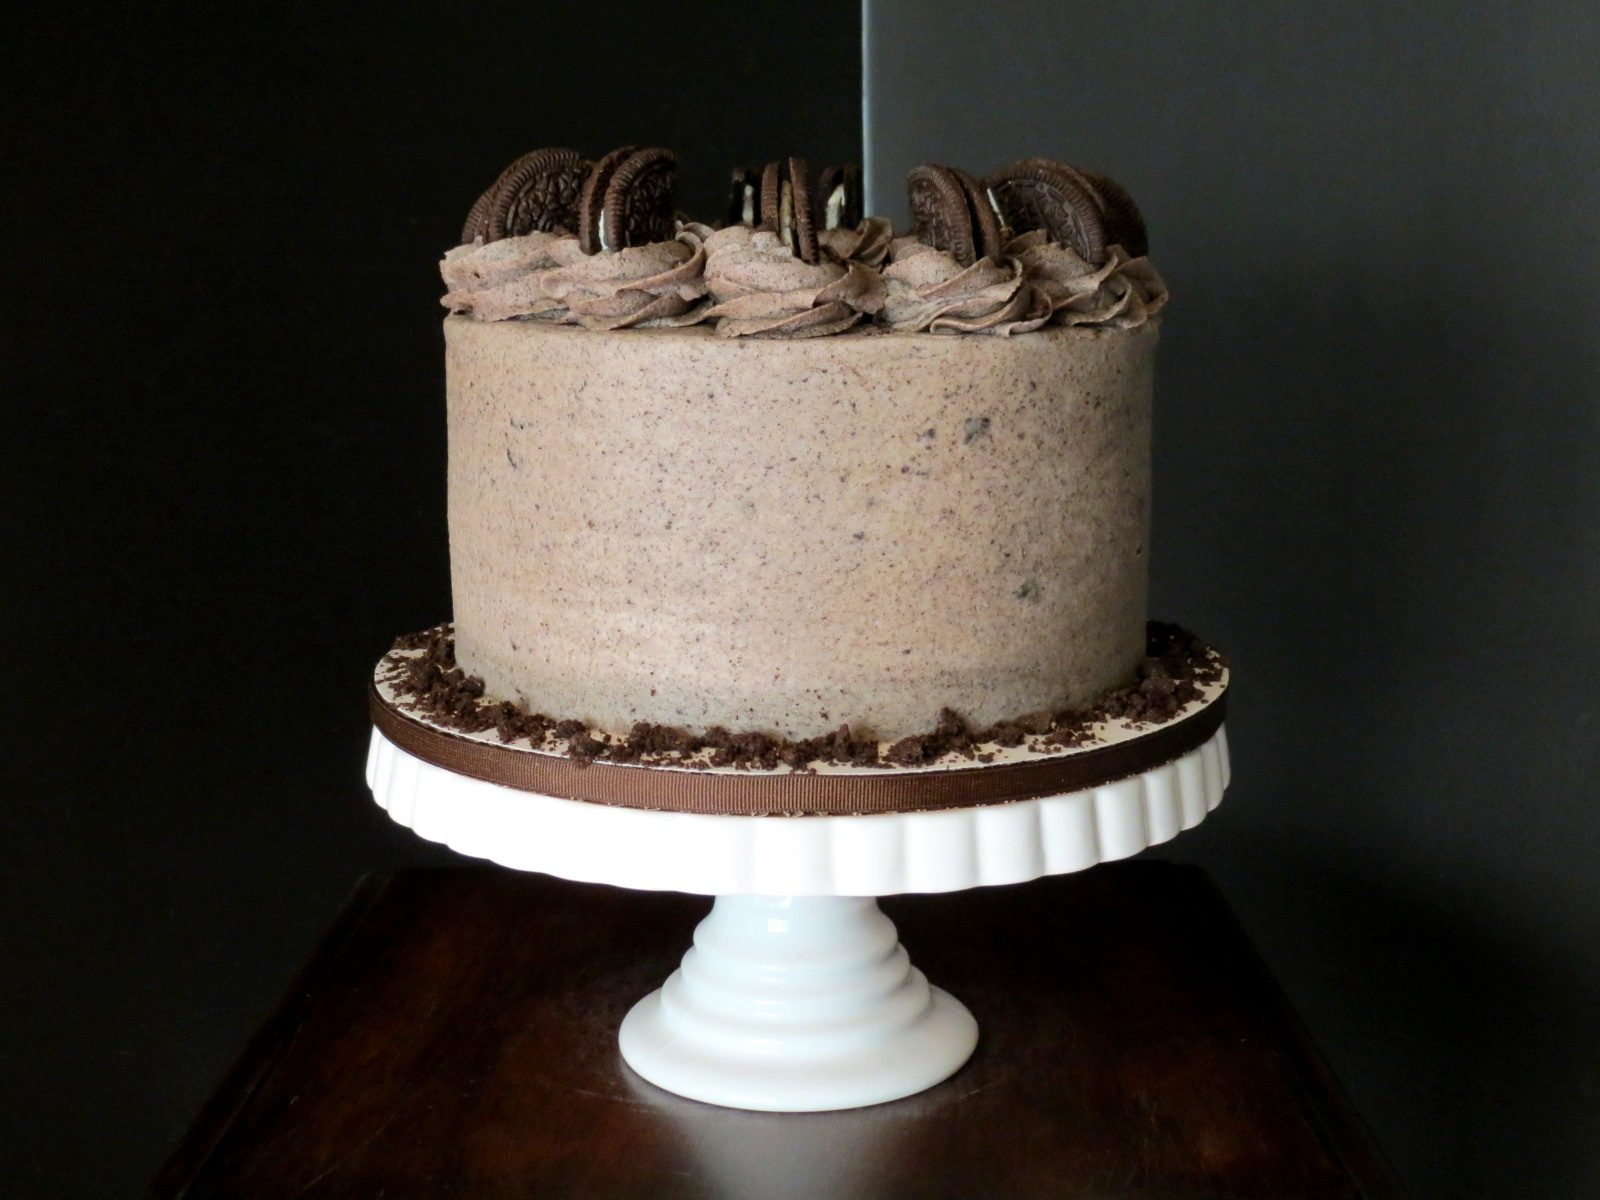 Vegan Cookies And Cream Decadent Chocolate Cake